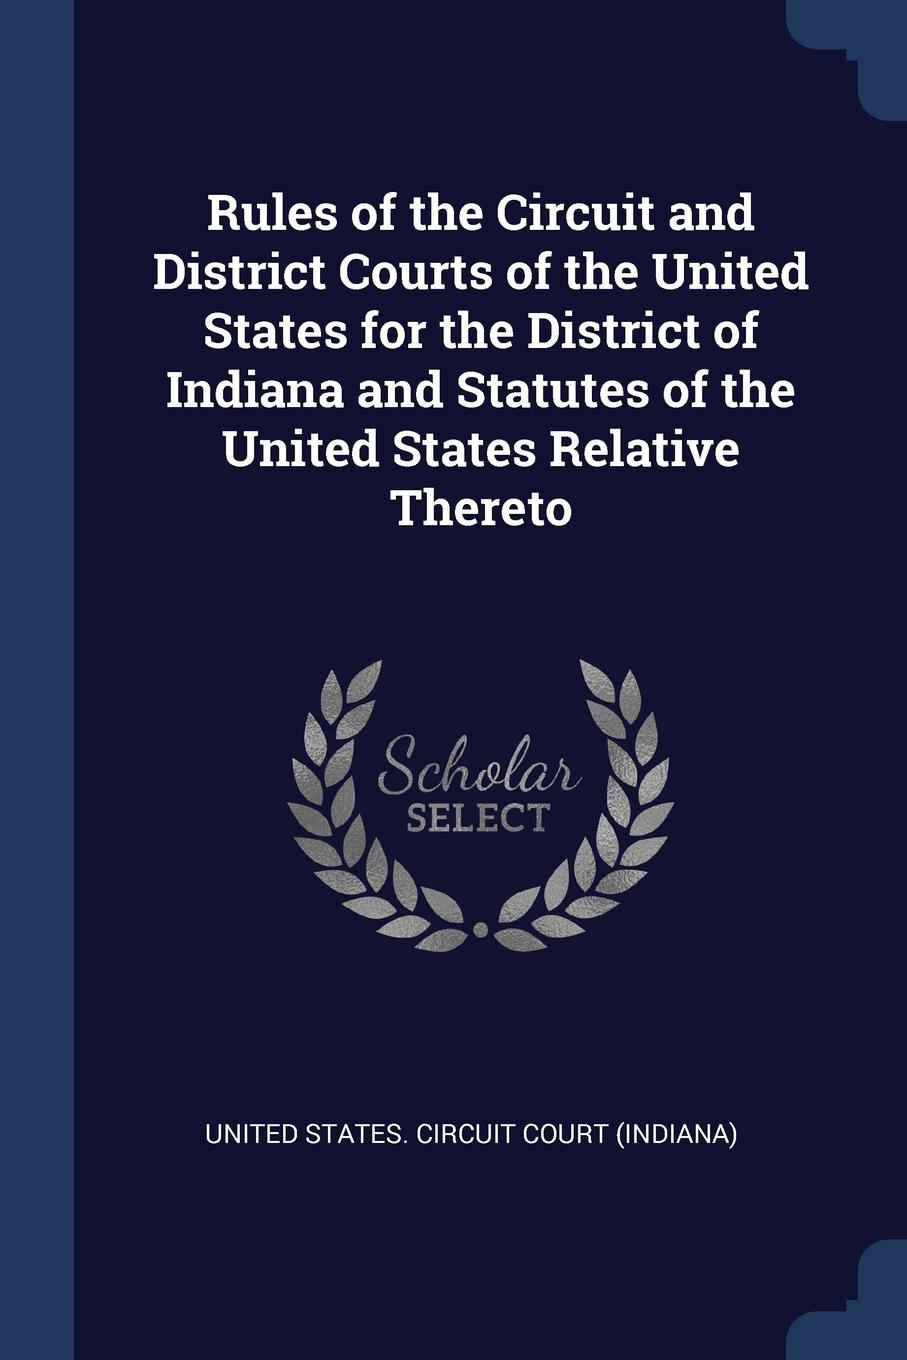 Rules of the Circuit and District Courts United States for Indiana Statutes Relative Thereto